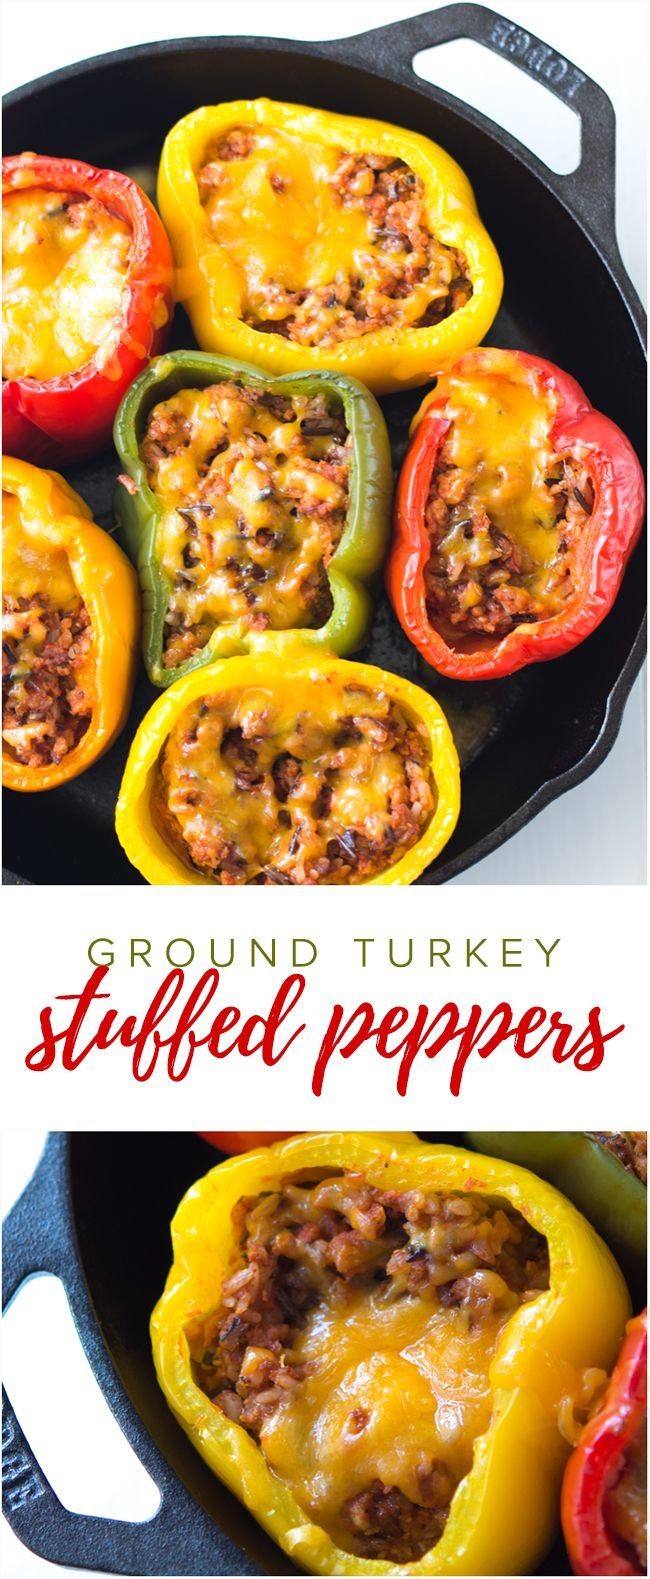 Best 25 healthy recipes ideas on pinterest healthy dinner ground turkey stuffed peppers easy turkey recipescrockpot ground turkey recipeslean meat recipessimple healthy dinner forumfinder